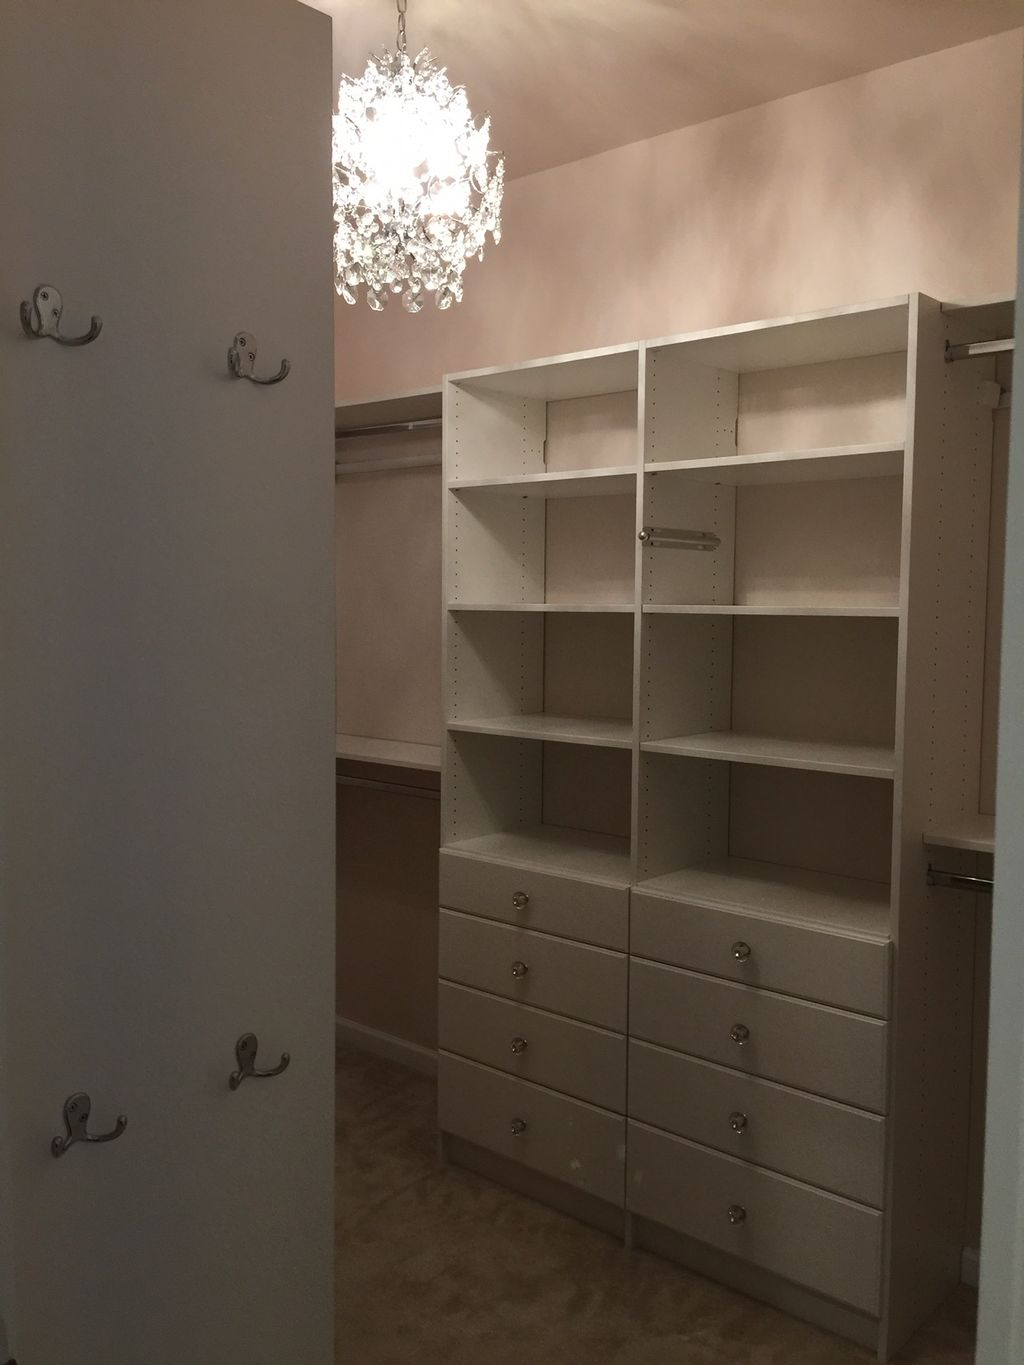 Closet and Shelving System Installation - Avondale 2019